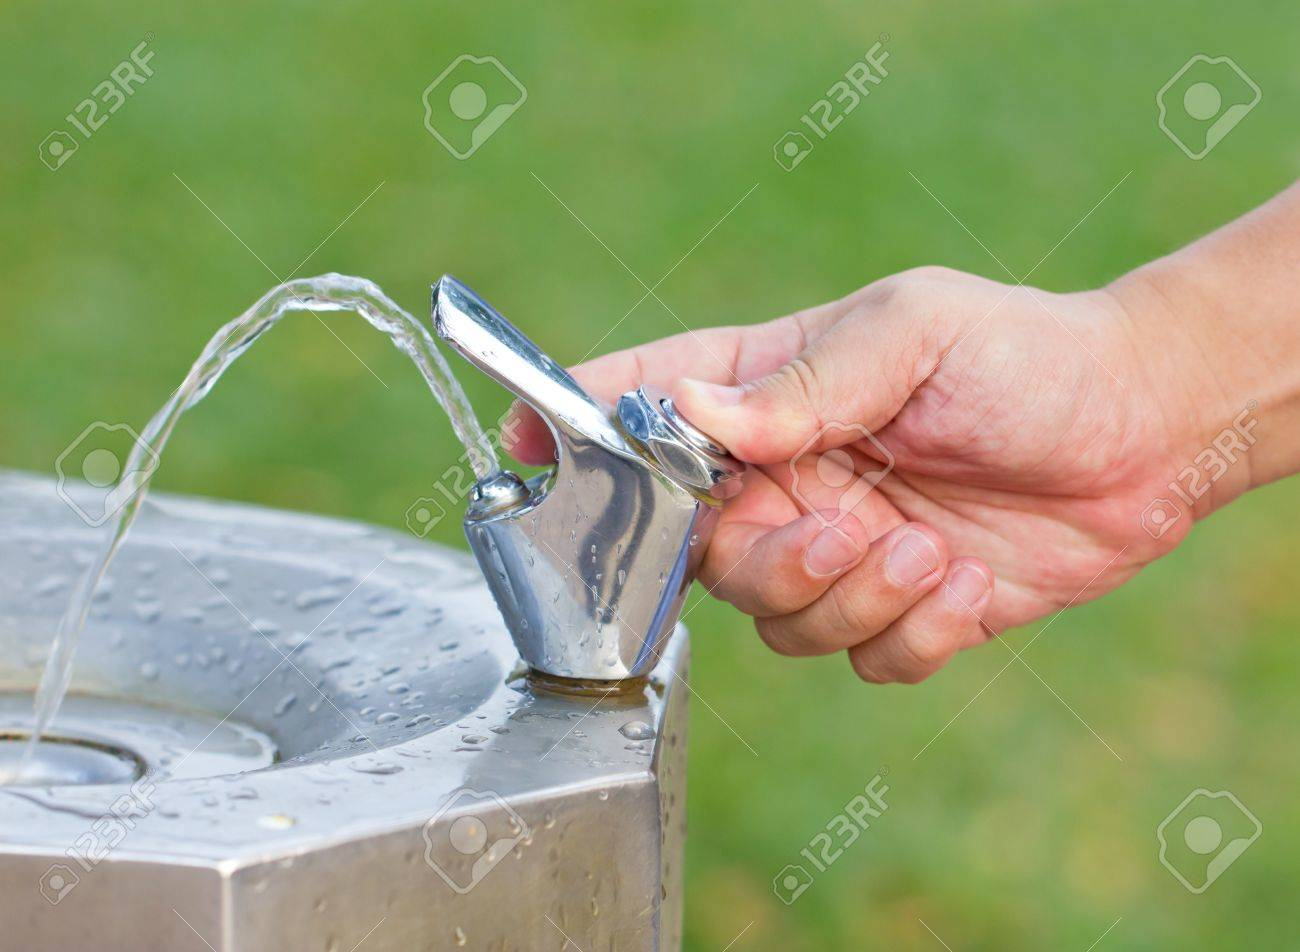 drinking water dispenser faucet. Man s hand turns on the drinking water faucet at public park Stock Photo  21353880Man S Hand Turns On The Drinking Water Faucet At Public Park Dispenser Polished chrome contemporary